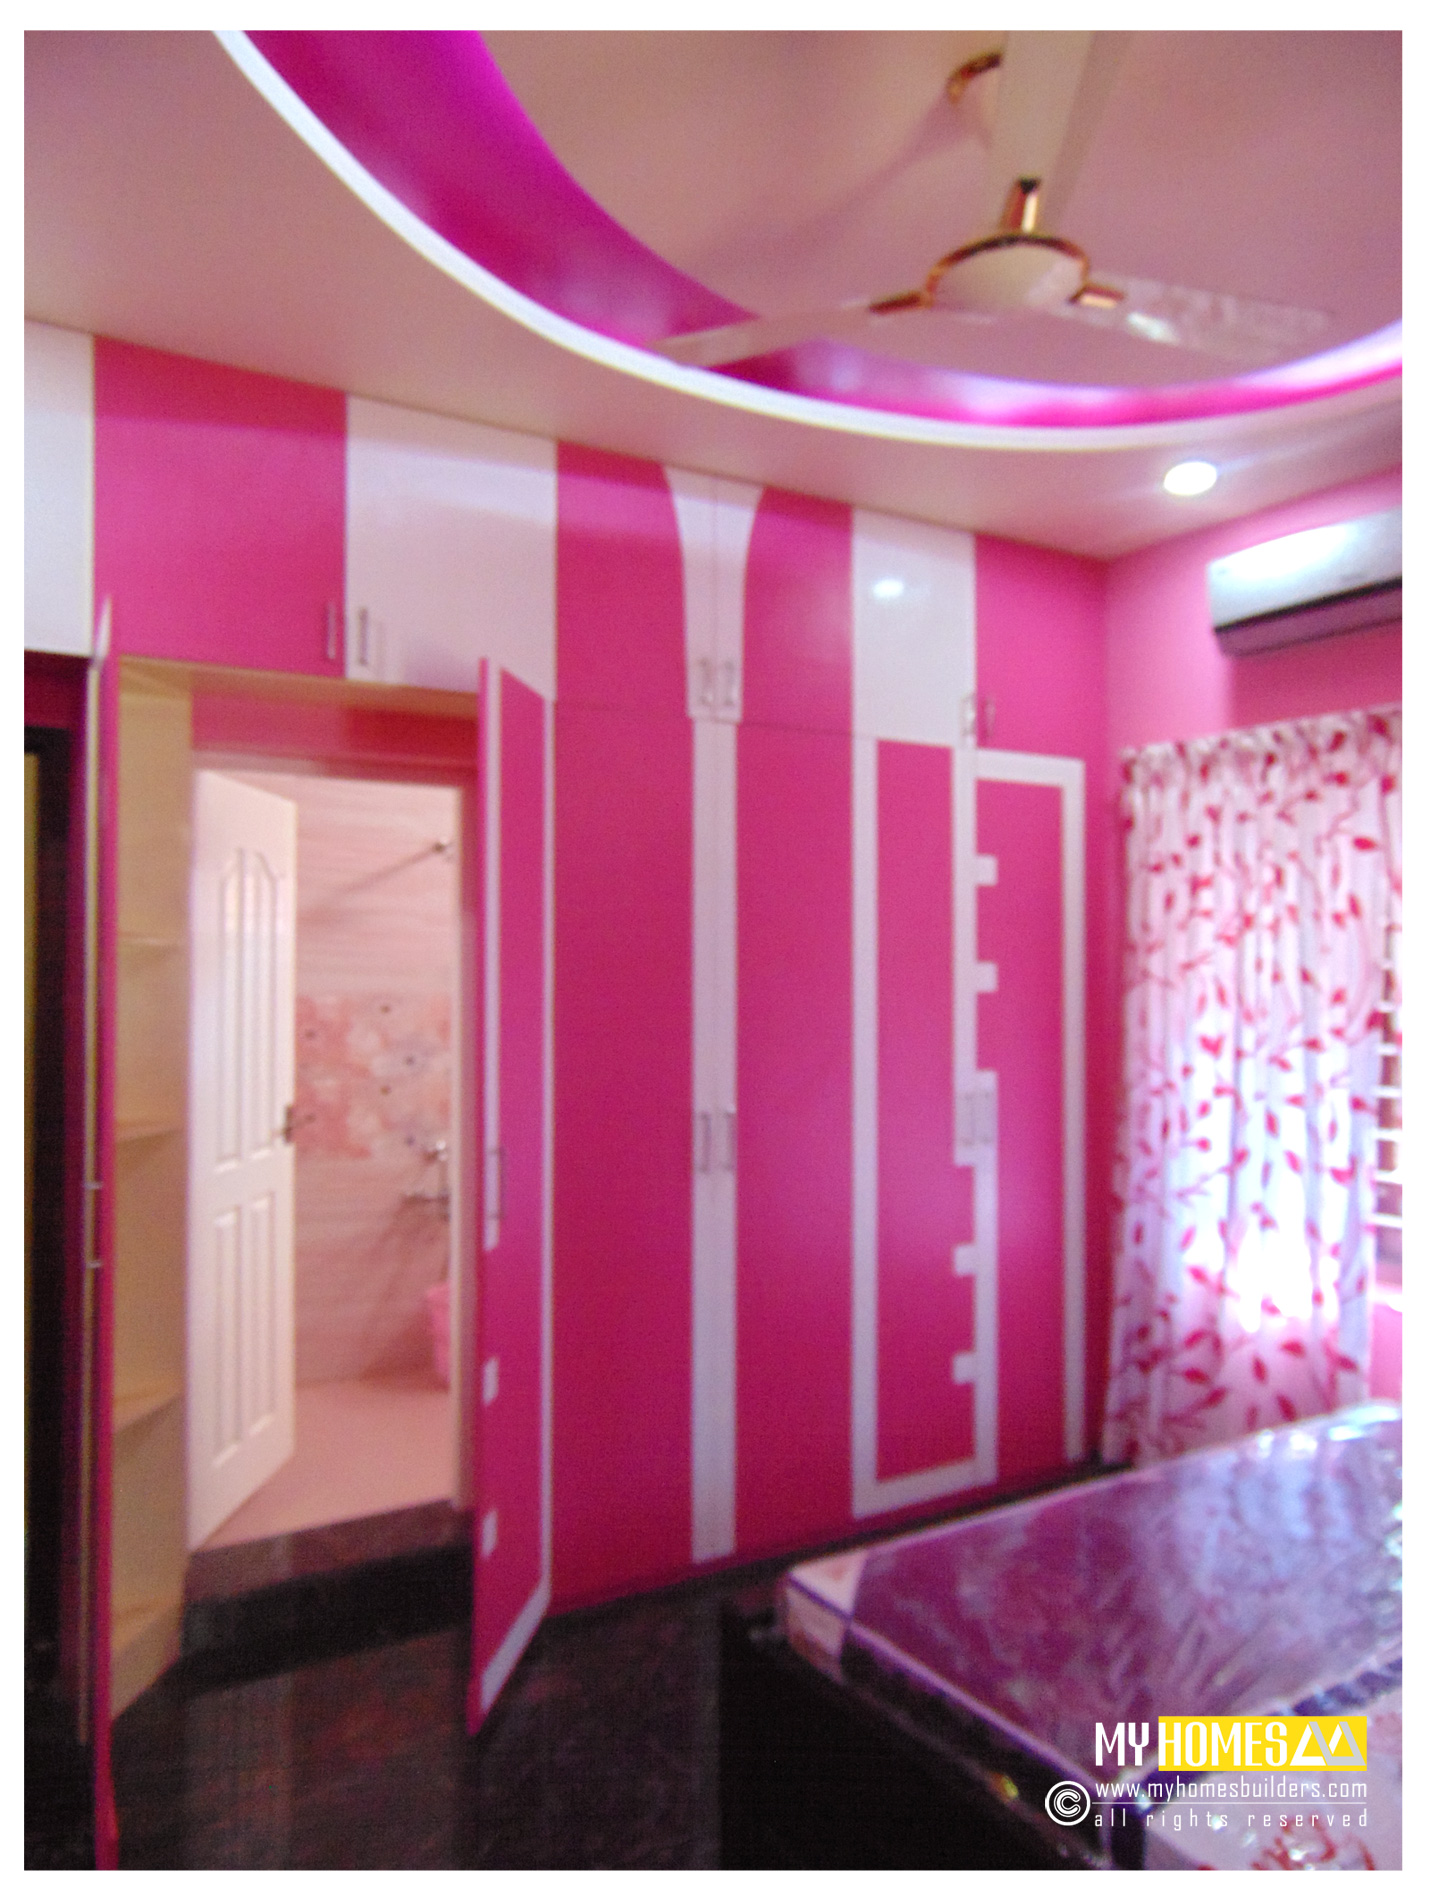 Modern interior idea for home bedroom designs kerala india for Bathroom interior design kerala